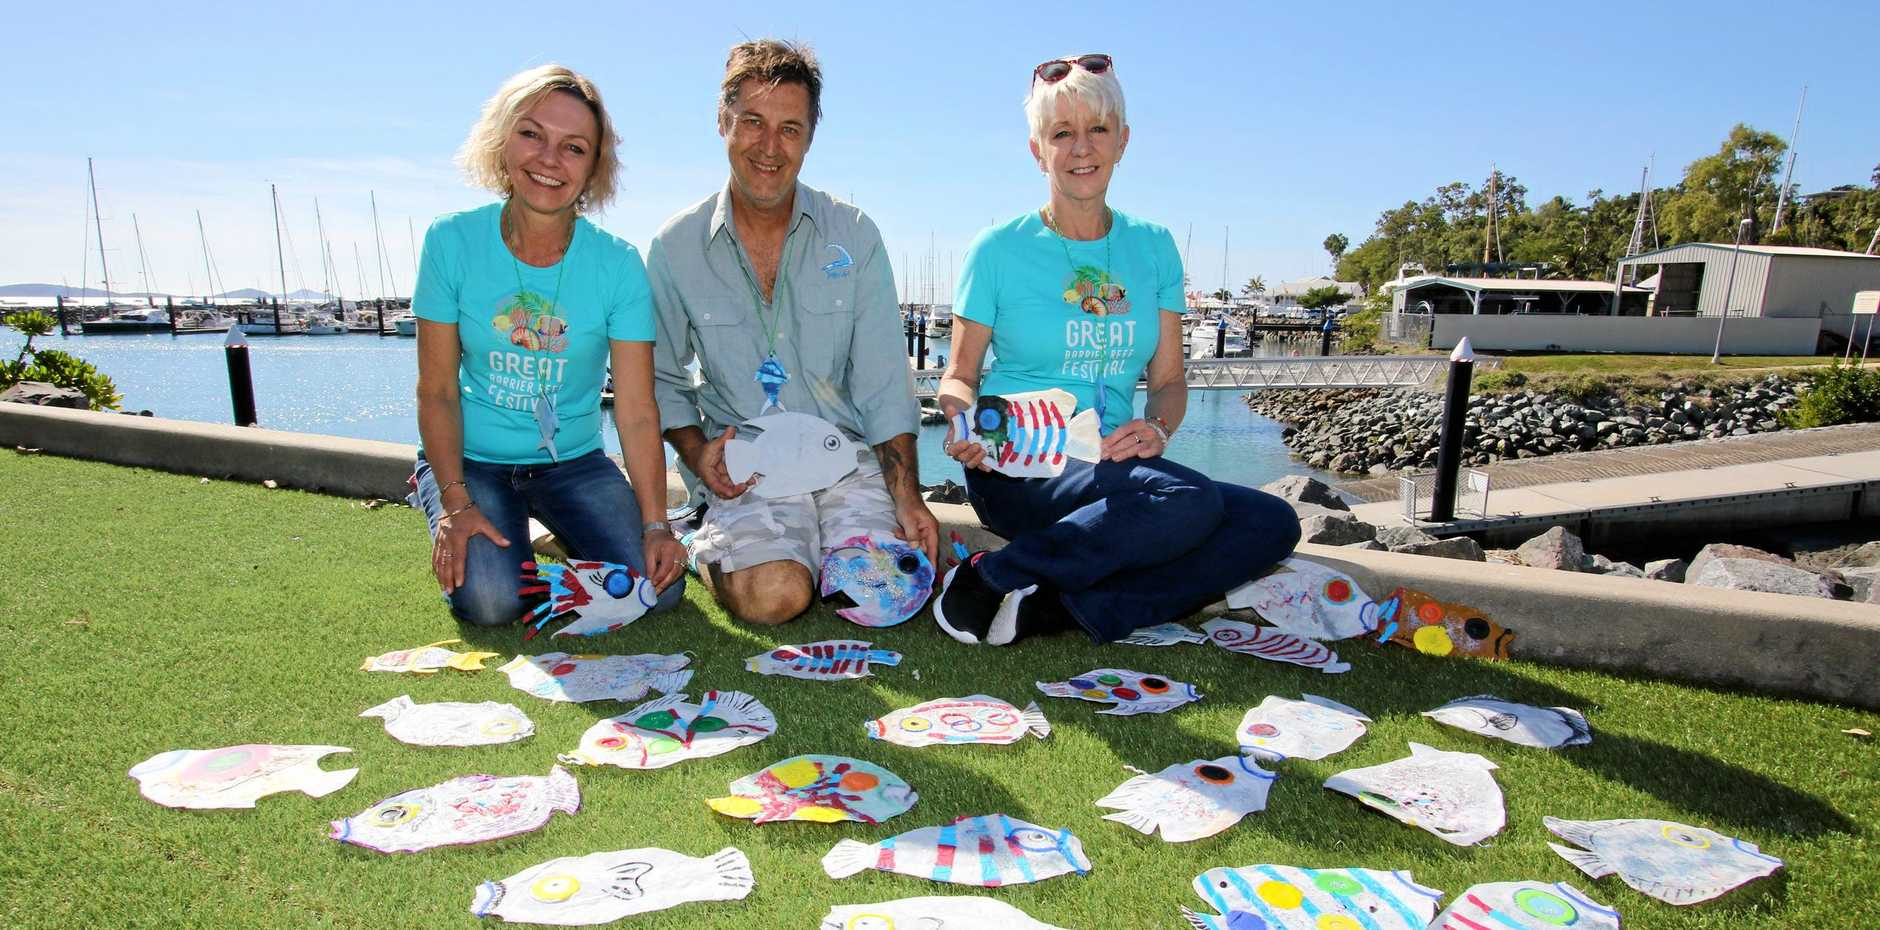 WORKSHOP: Margie Murphy and Anita Pender (left and right) from the Great Barrier Reef Festival with upcycling artist David Day.